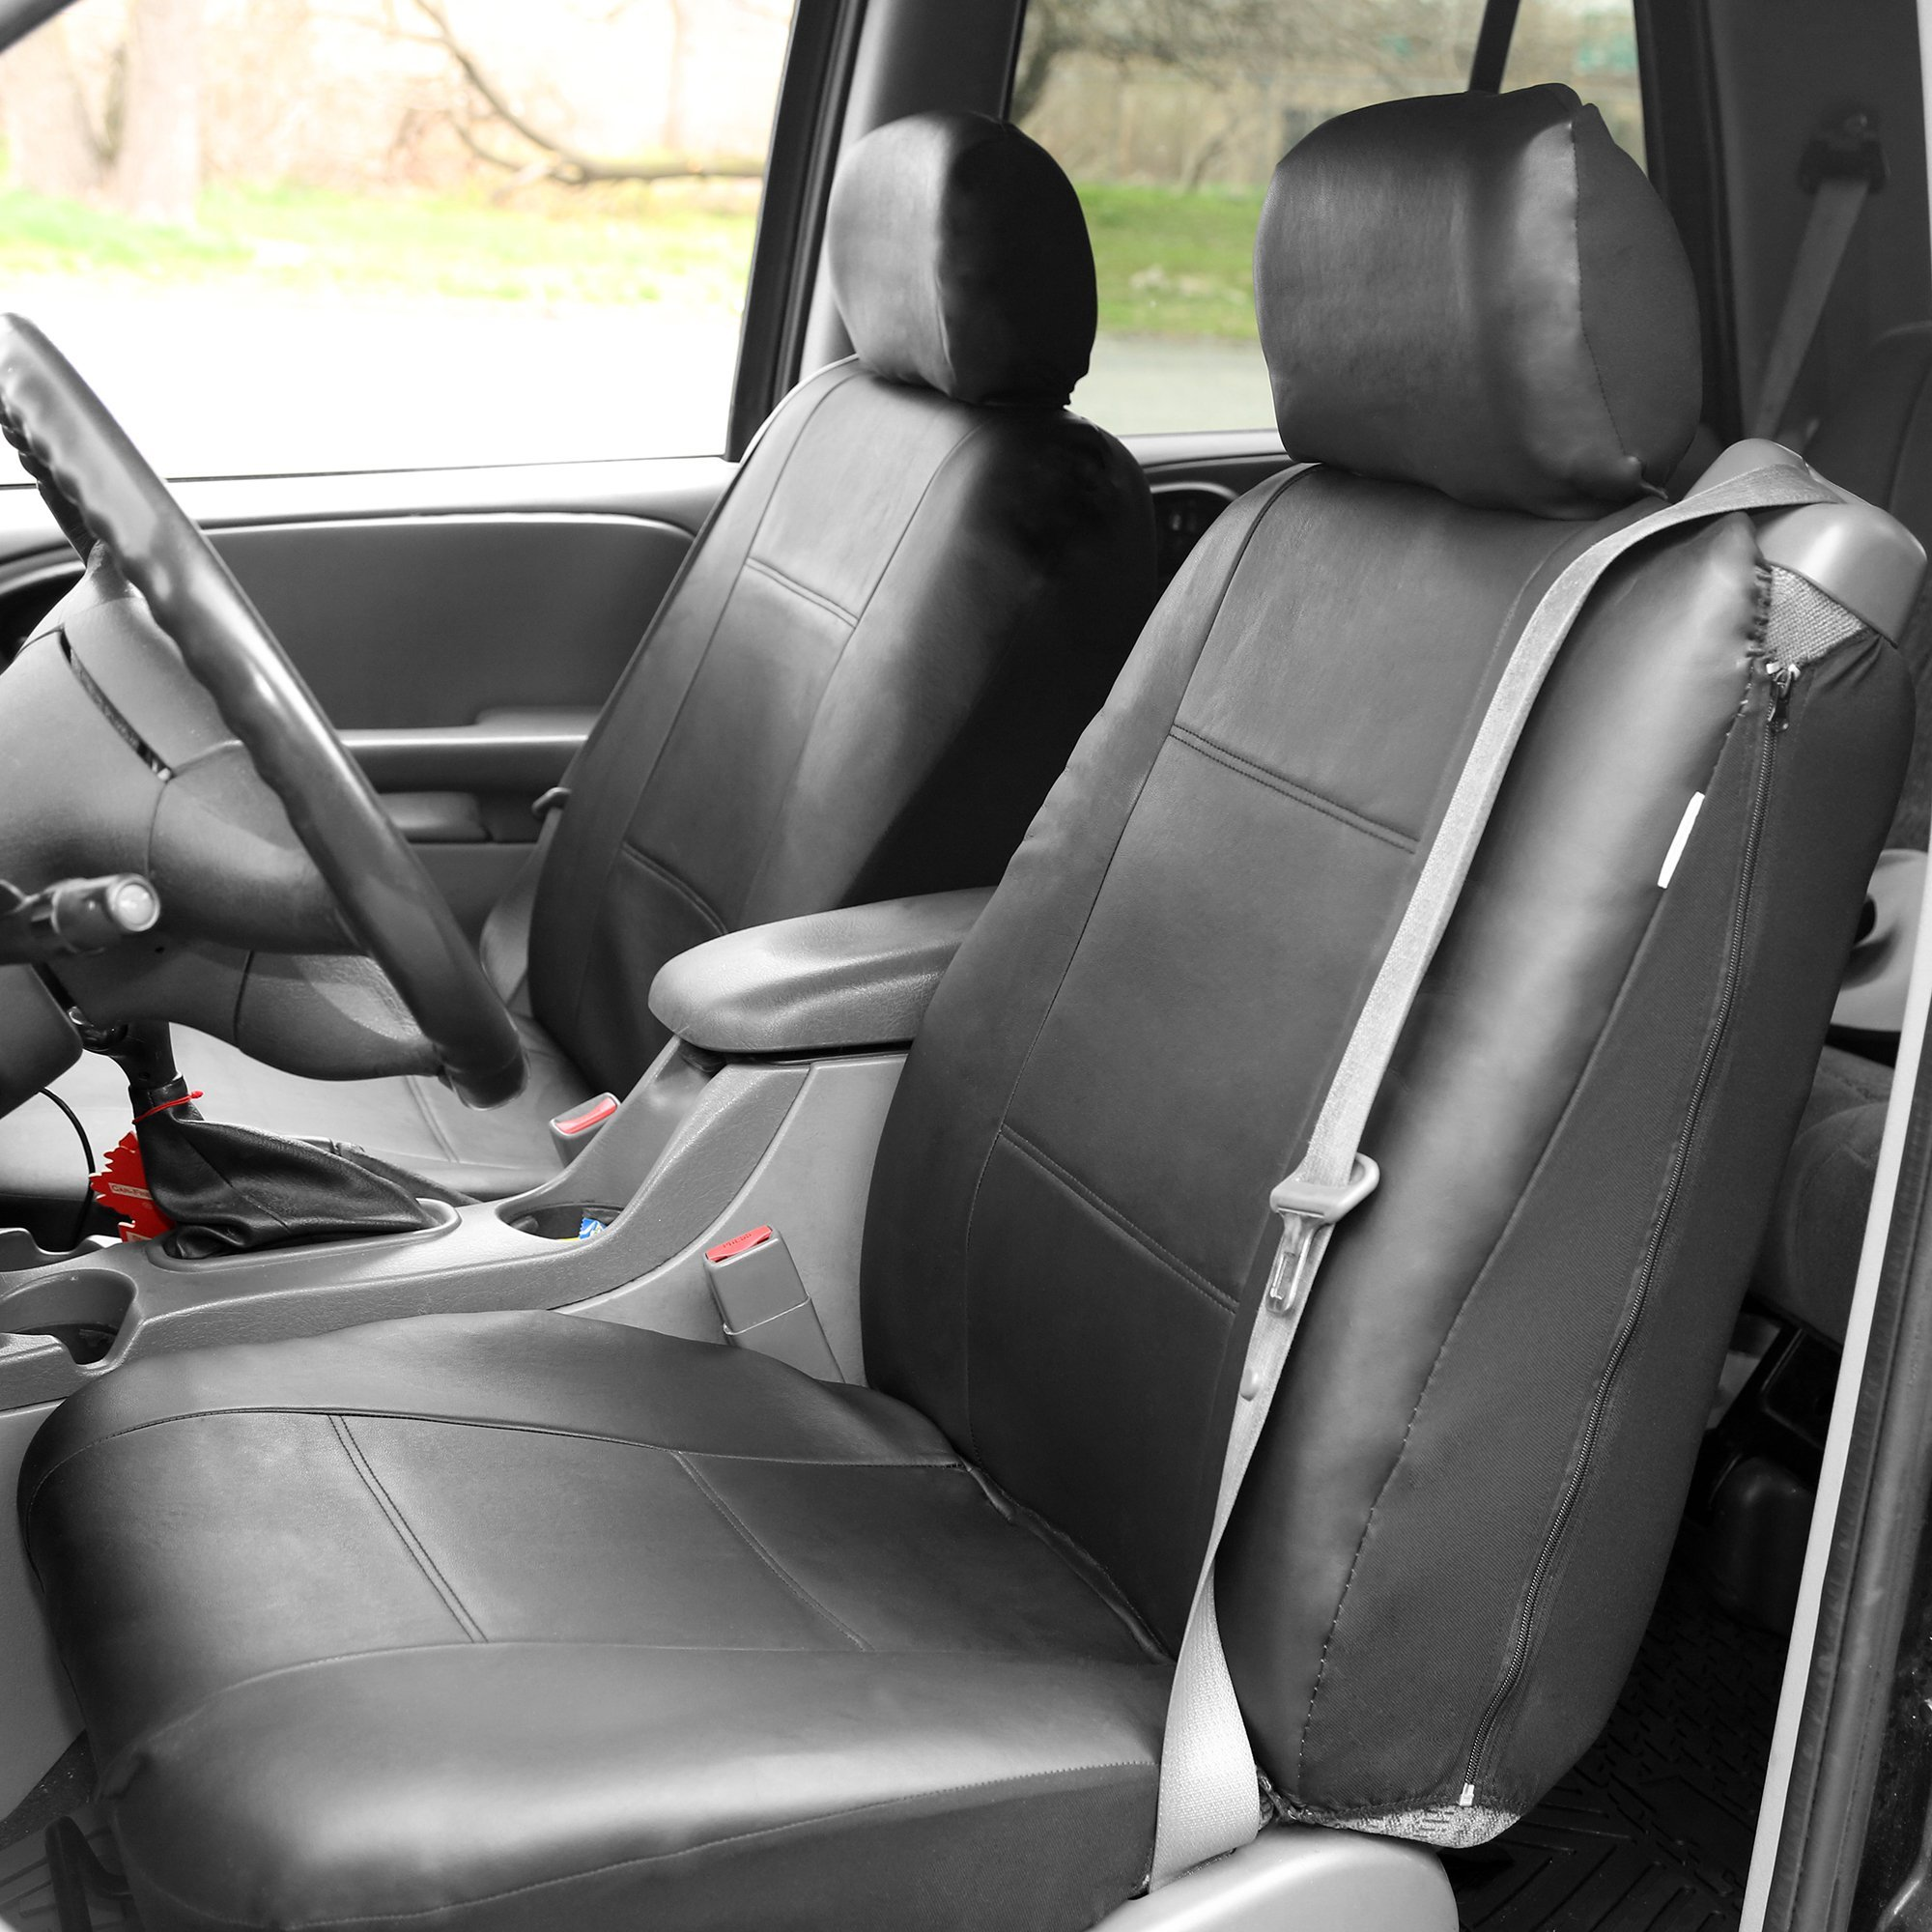 FH Group PU309GRAYBLACK102 Gray/Black Front PU Leather Seat Cover, Set of 2 (Built in Seat Belt Compatible Airbag Ready) by FH Group (Image #3)